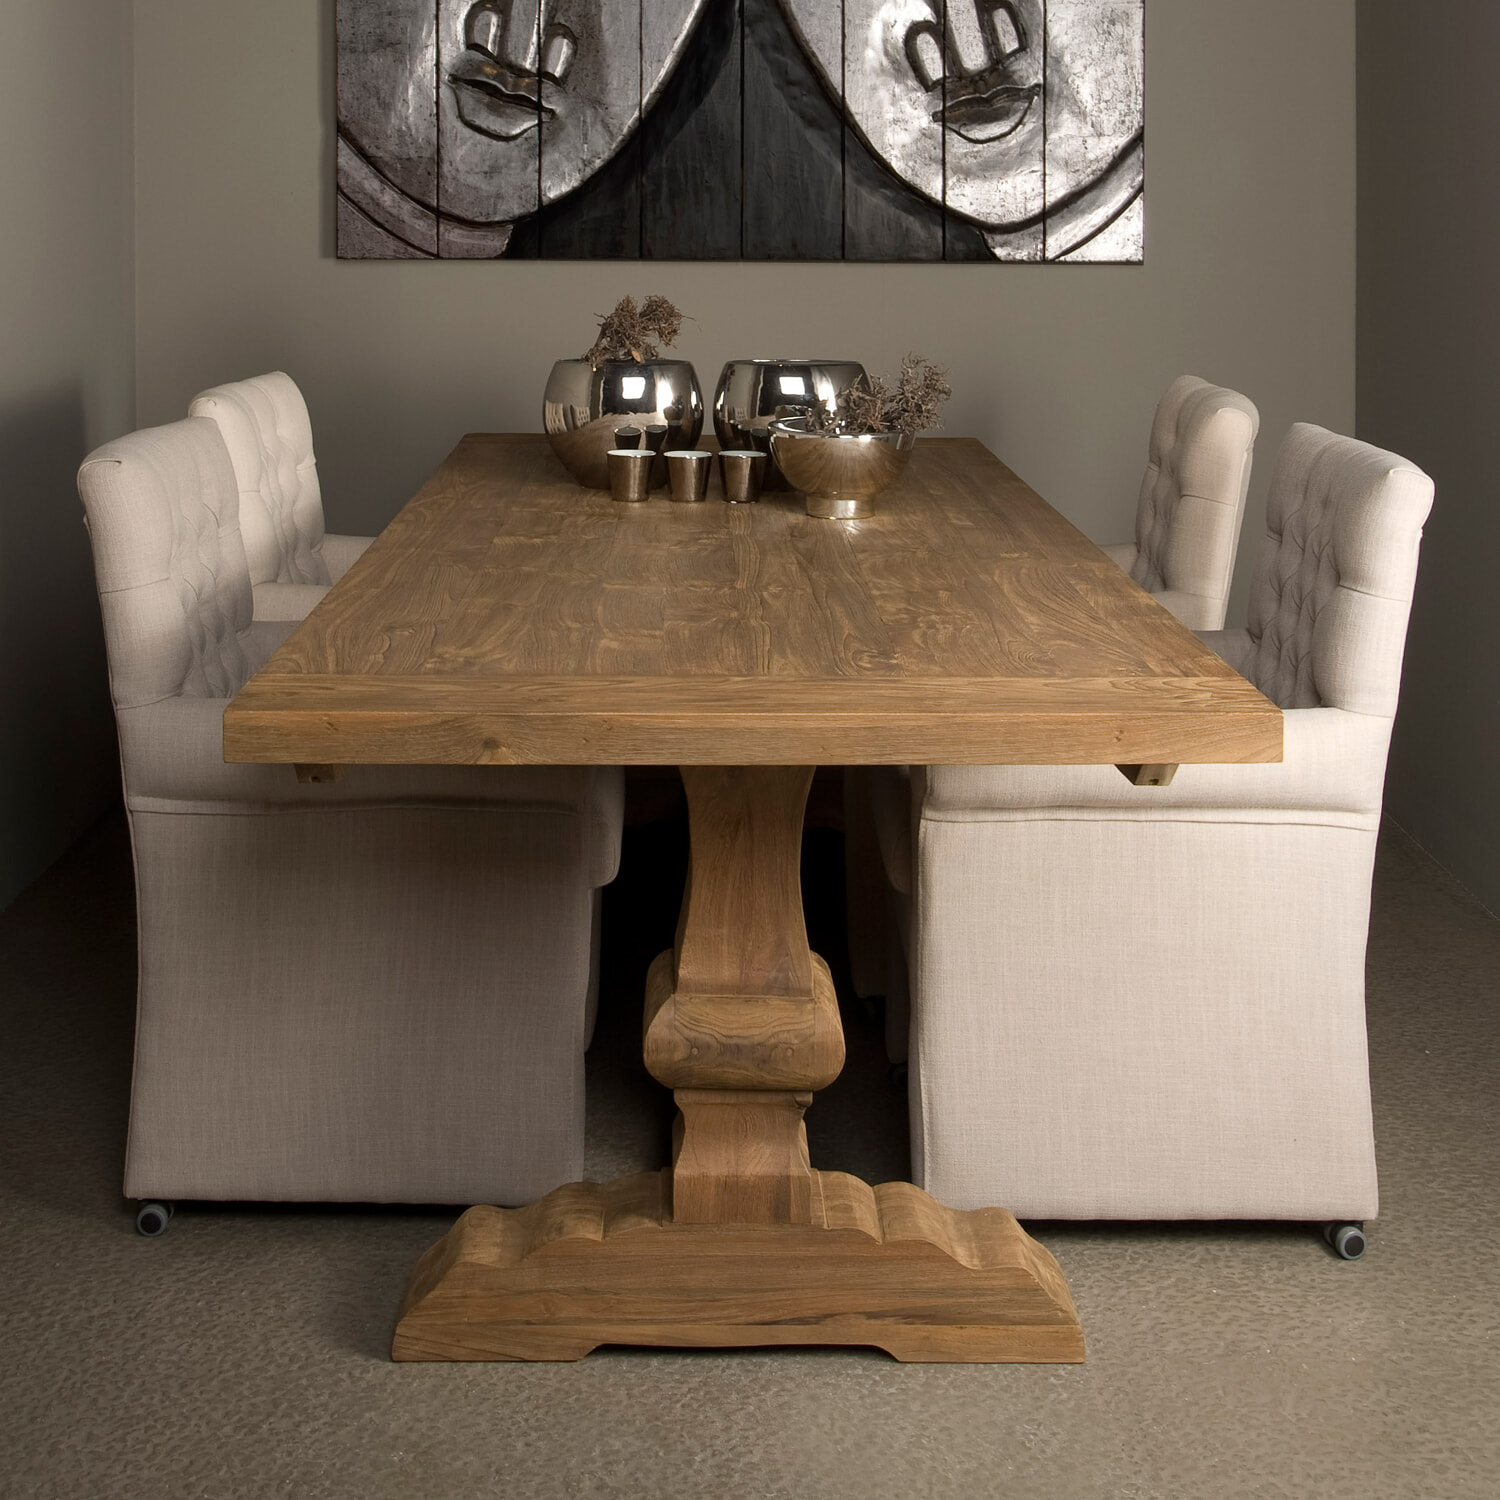 Tower Living Kloostertafel 'Le mans' 240 x 100cm